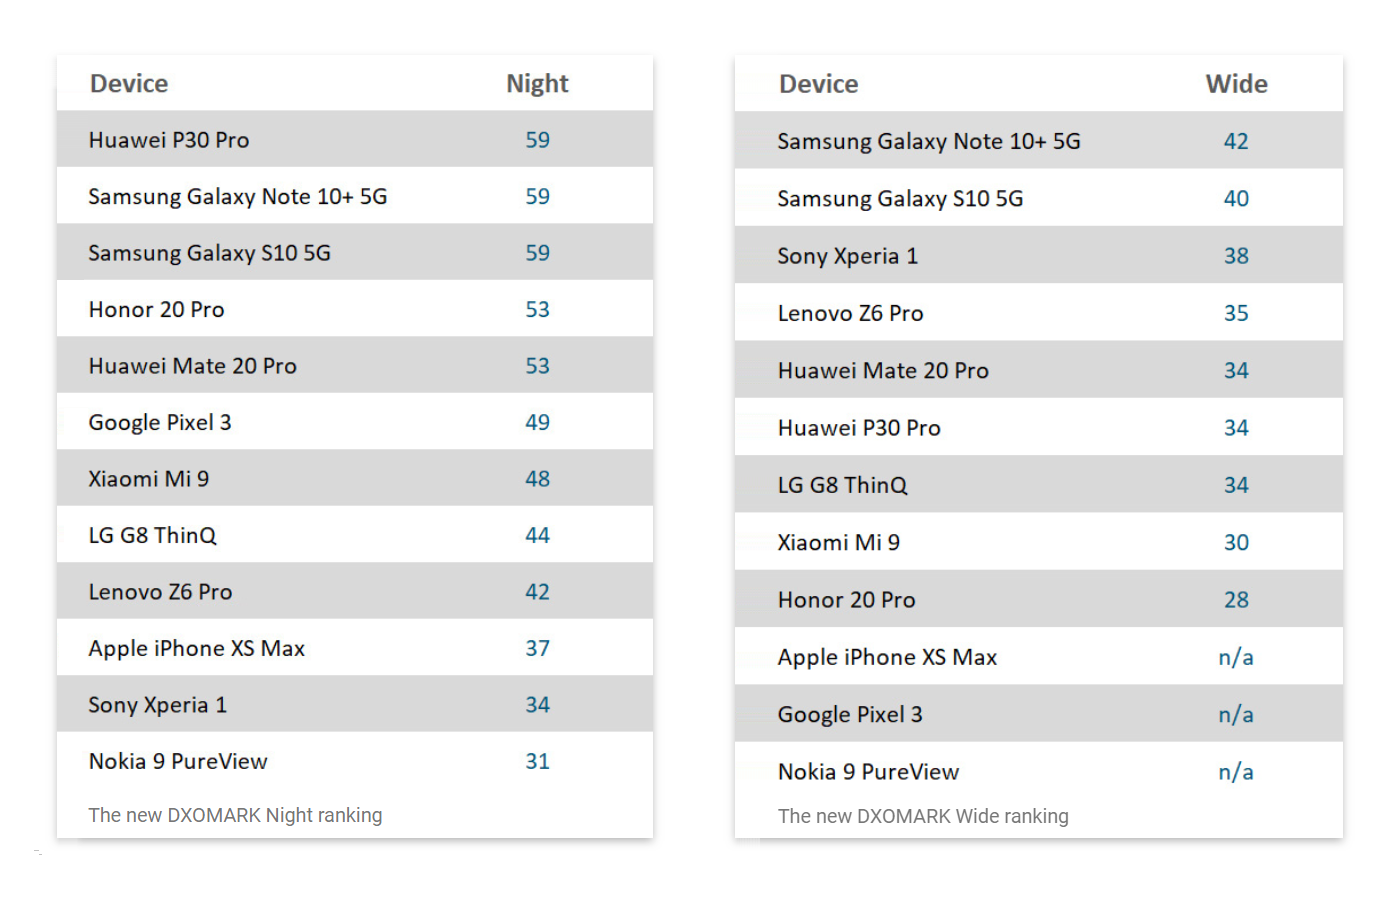 According to the results by DxOMark, Huawei P30 Pro ranked as the phone with the highest score of 59 for its camera under low-light conditions whereas Samsung Galaxy Note 10+ 5G ranked the highest score of 42 when it comes to wide angle mode.